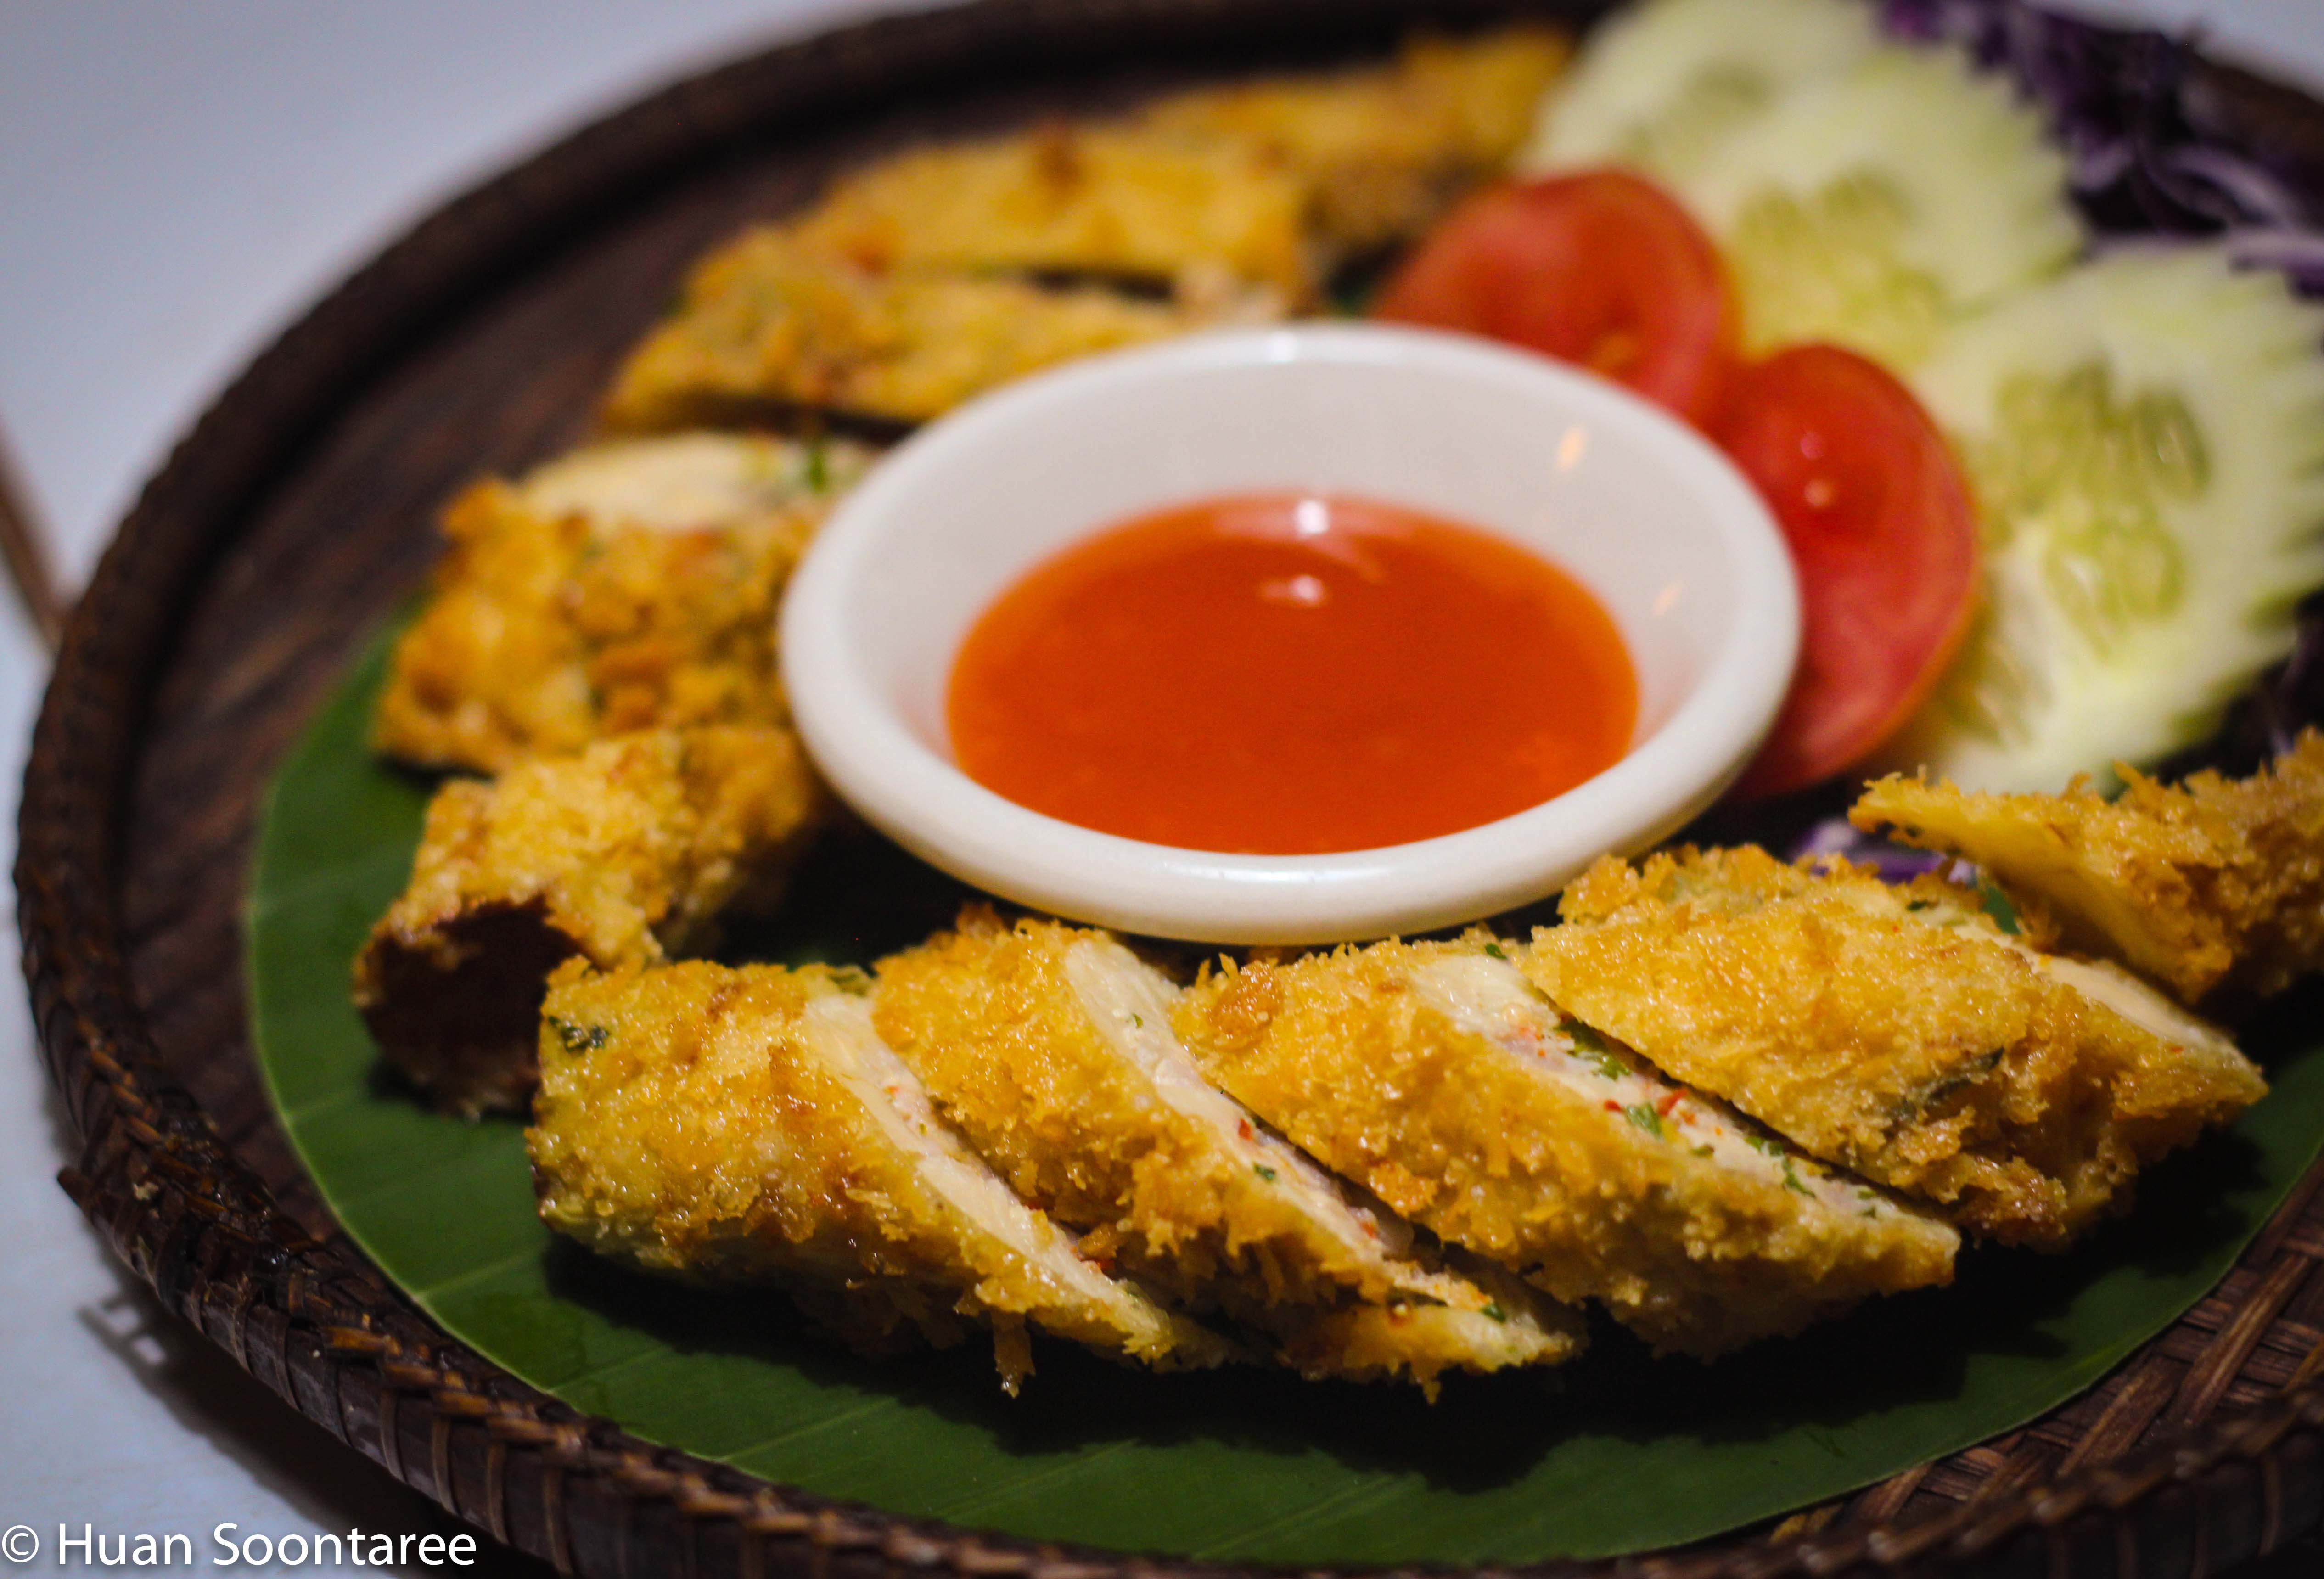 06 Stuffed bamboo shoots tempura